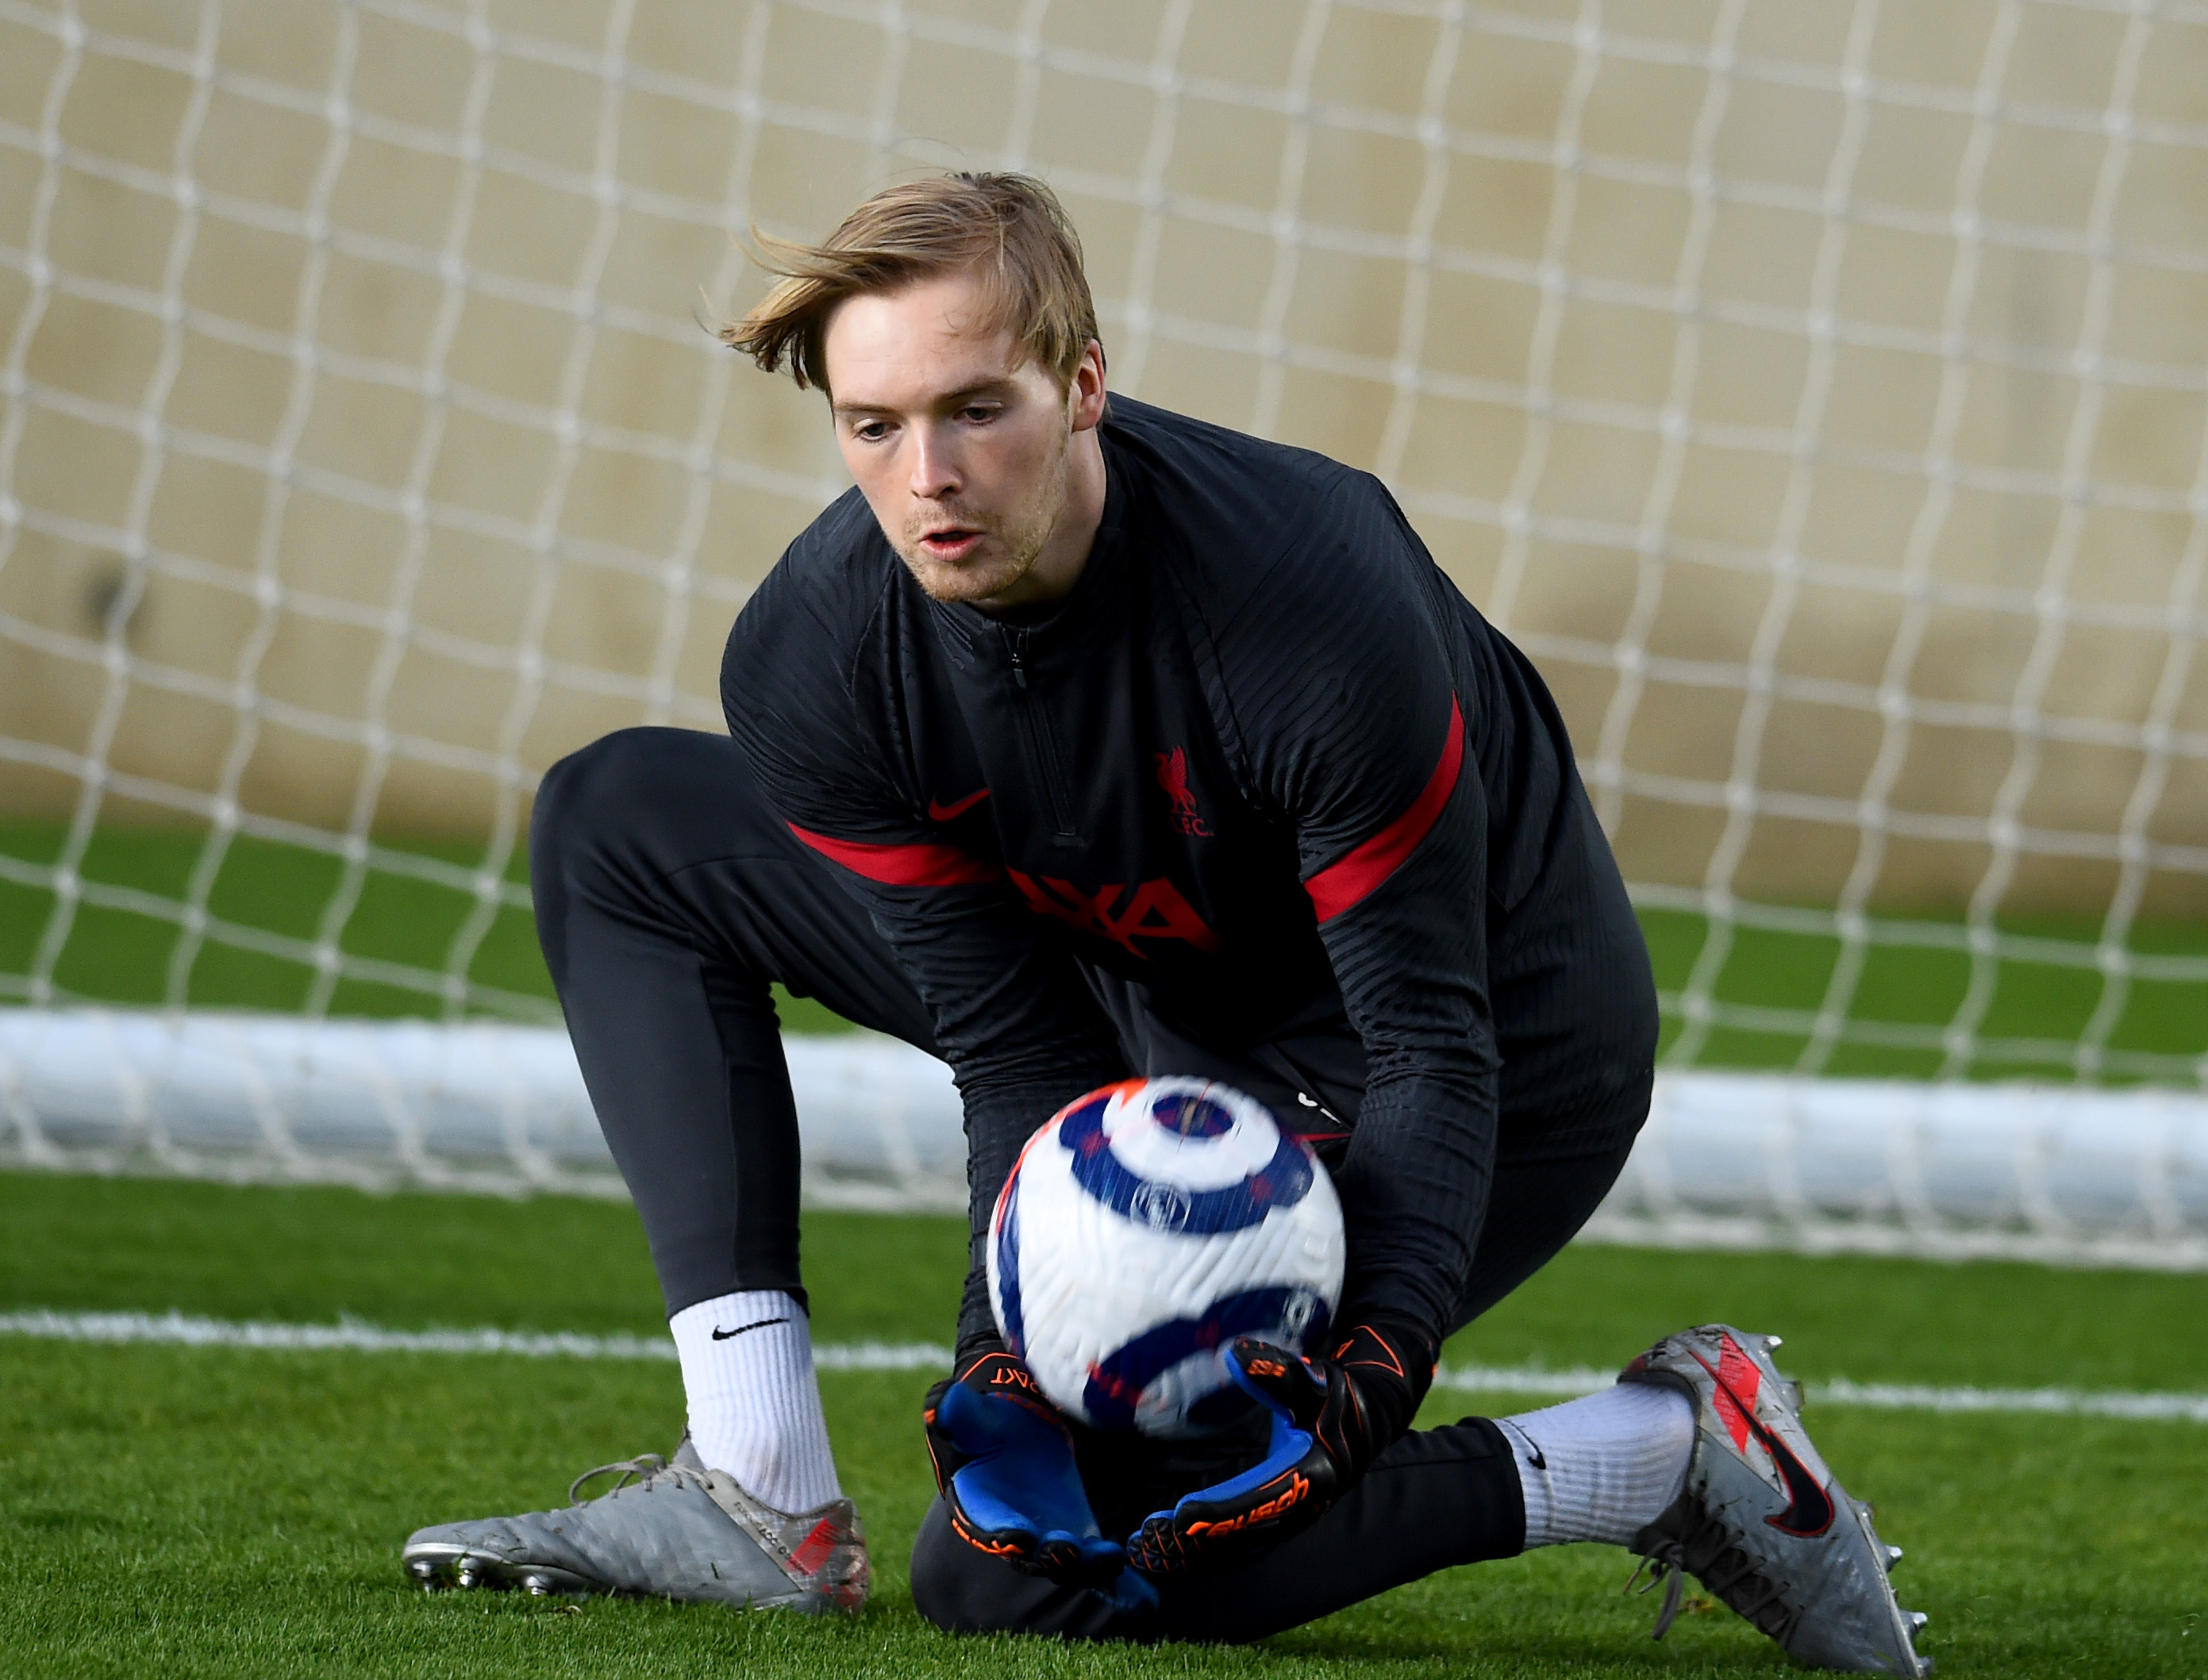 Caoimhin Kelleher of Liverpool during a training session at AXA Training Centre on May 11, 2021 in Kirkby, England.